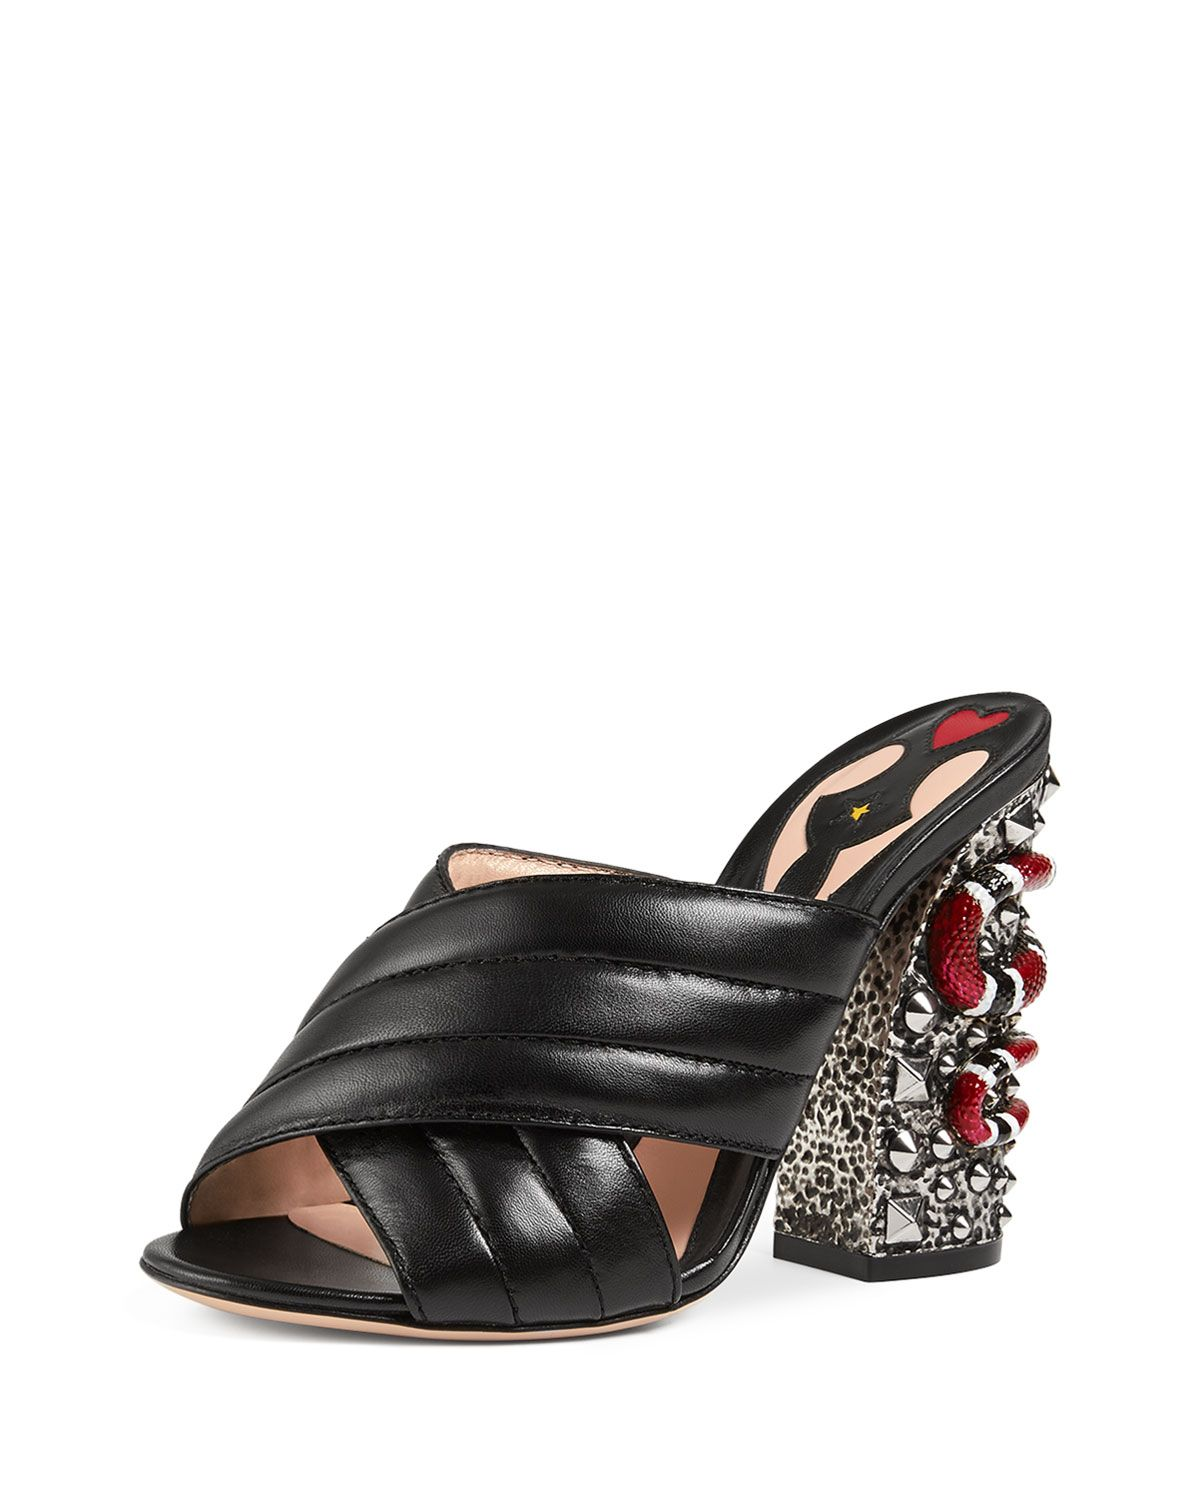 7ed565958 Webby Quilted Leather Snake-Heel Mule Sandal Black | Gucci | Heeled ...